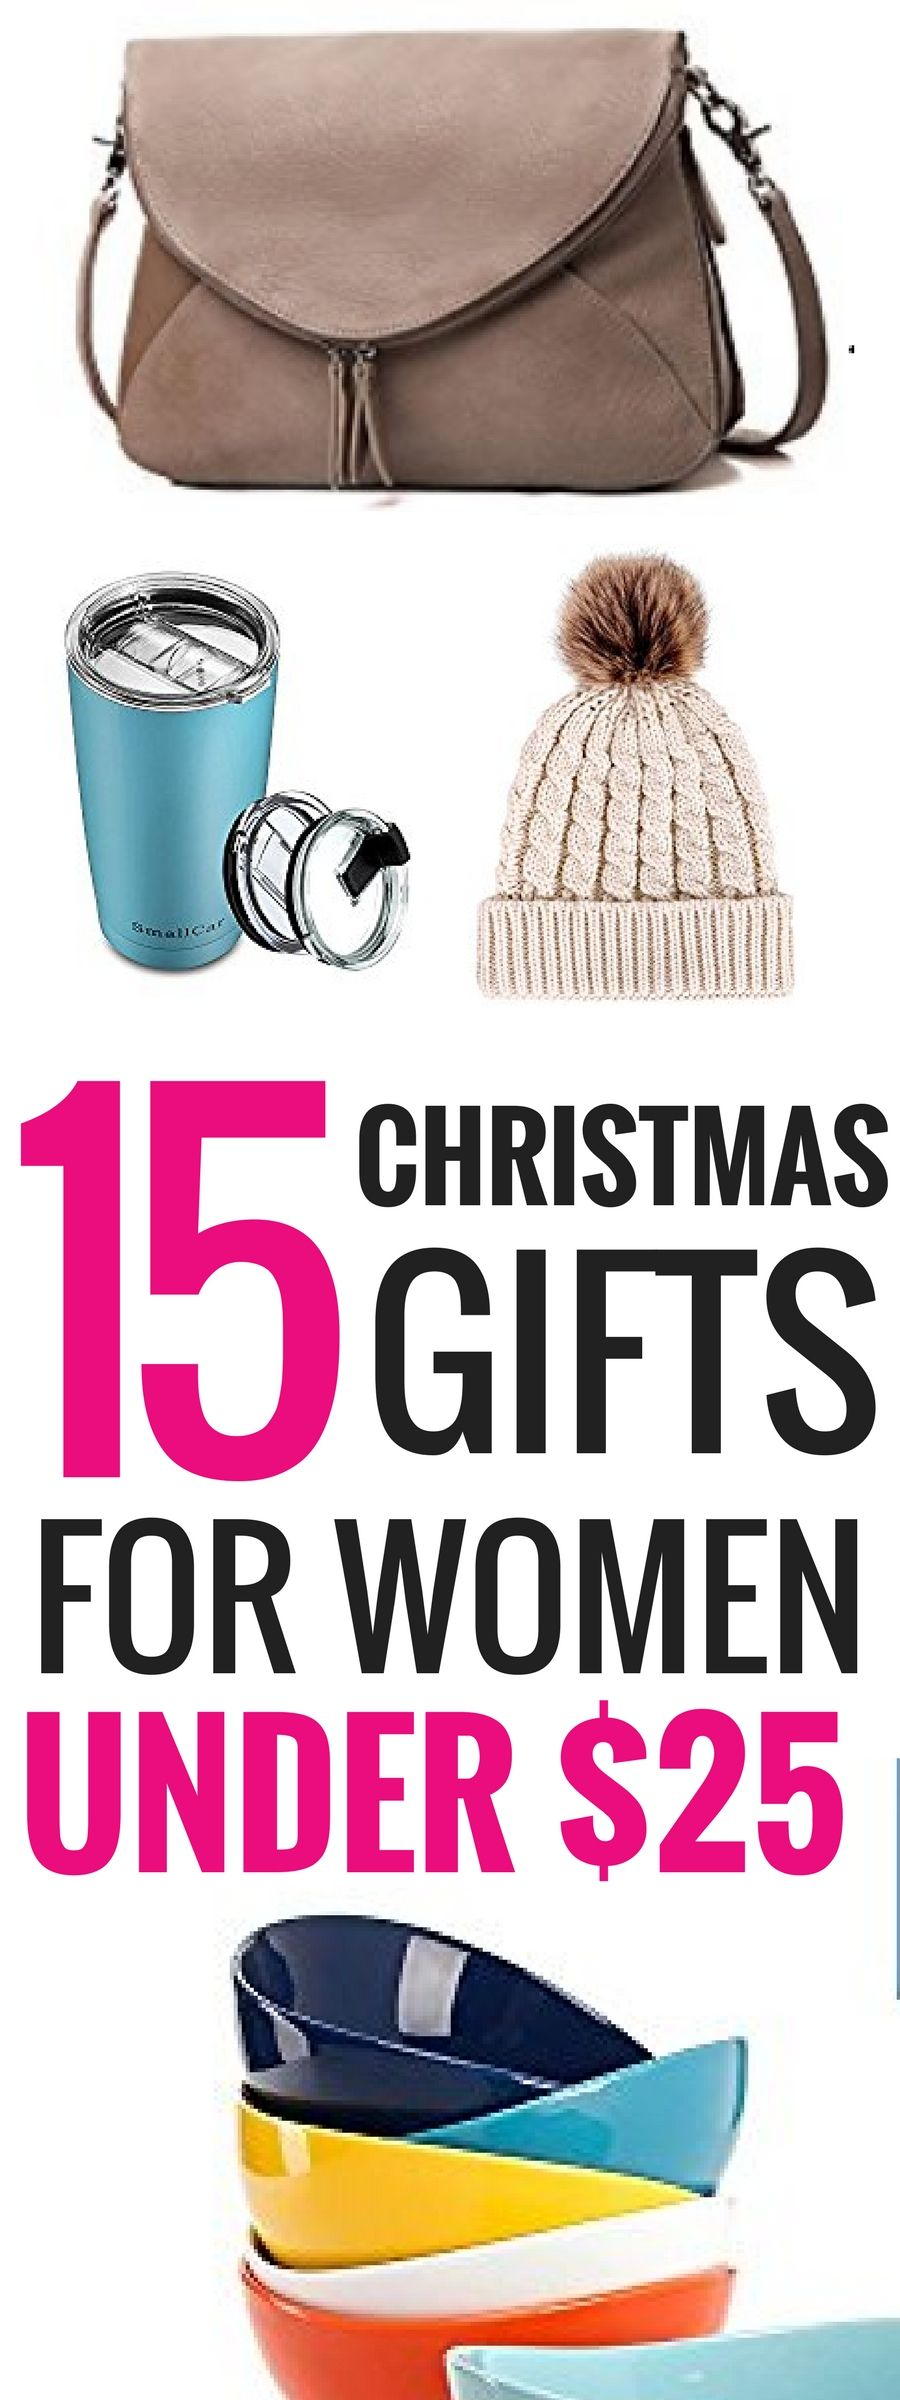 The Absolute Best Christmas Gifts For Women Under $25 | Mom gifts ...